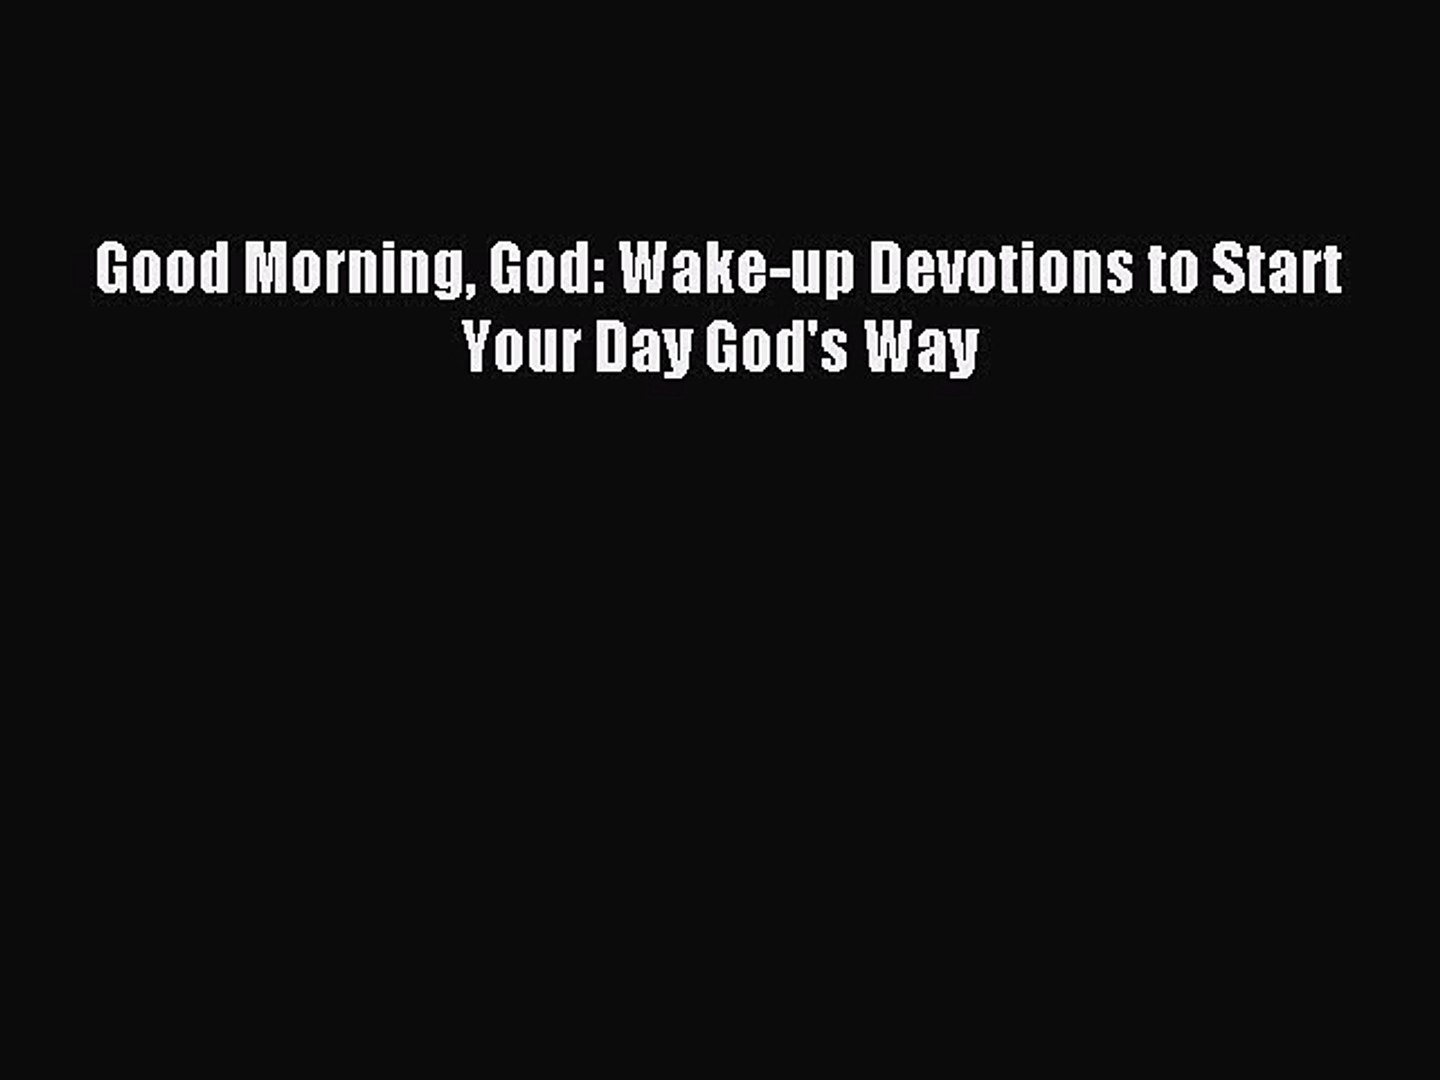 Good Morning God: Wake-up Devotions to Start Your Day God's Way [PDF  Download] Full Ebook